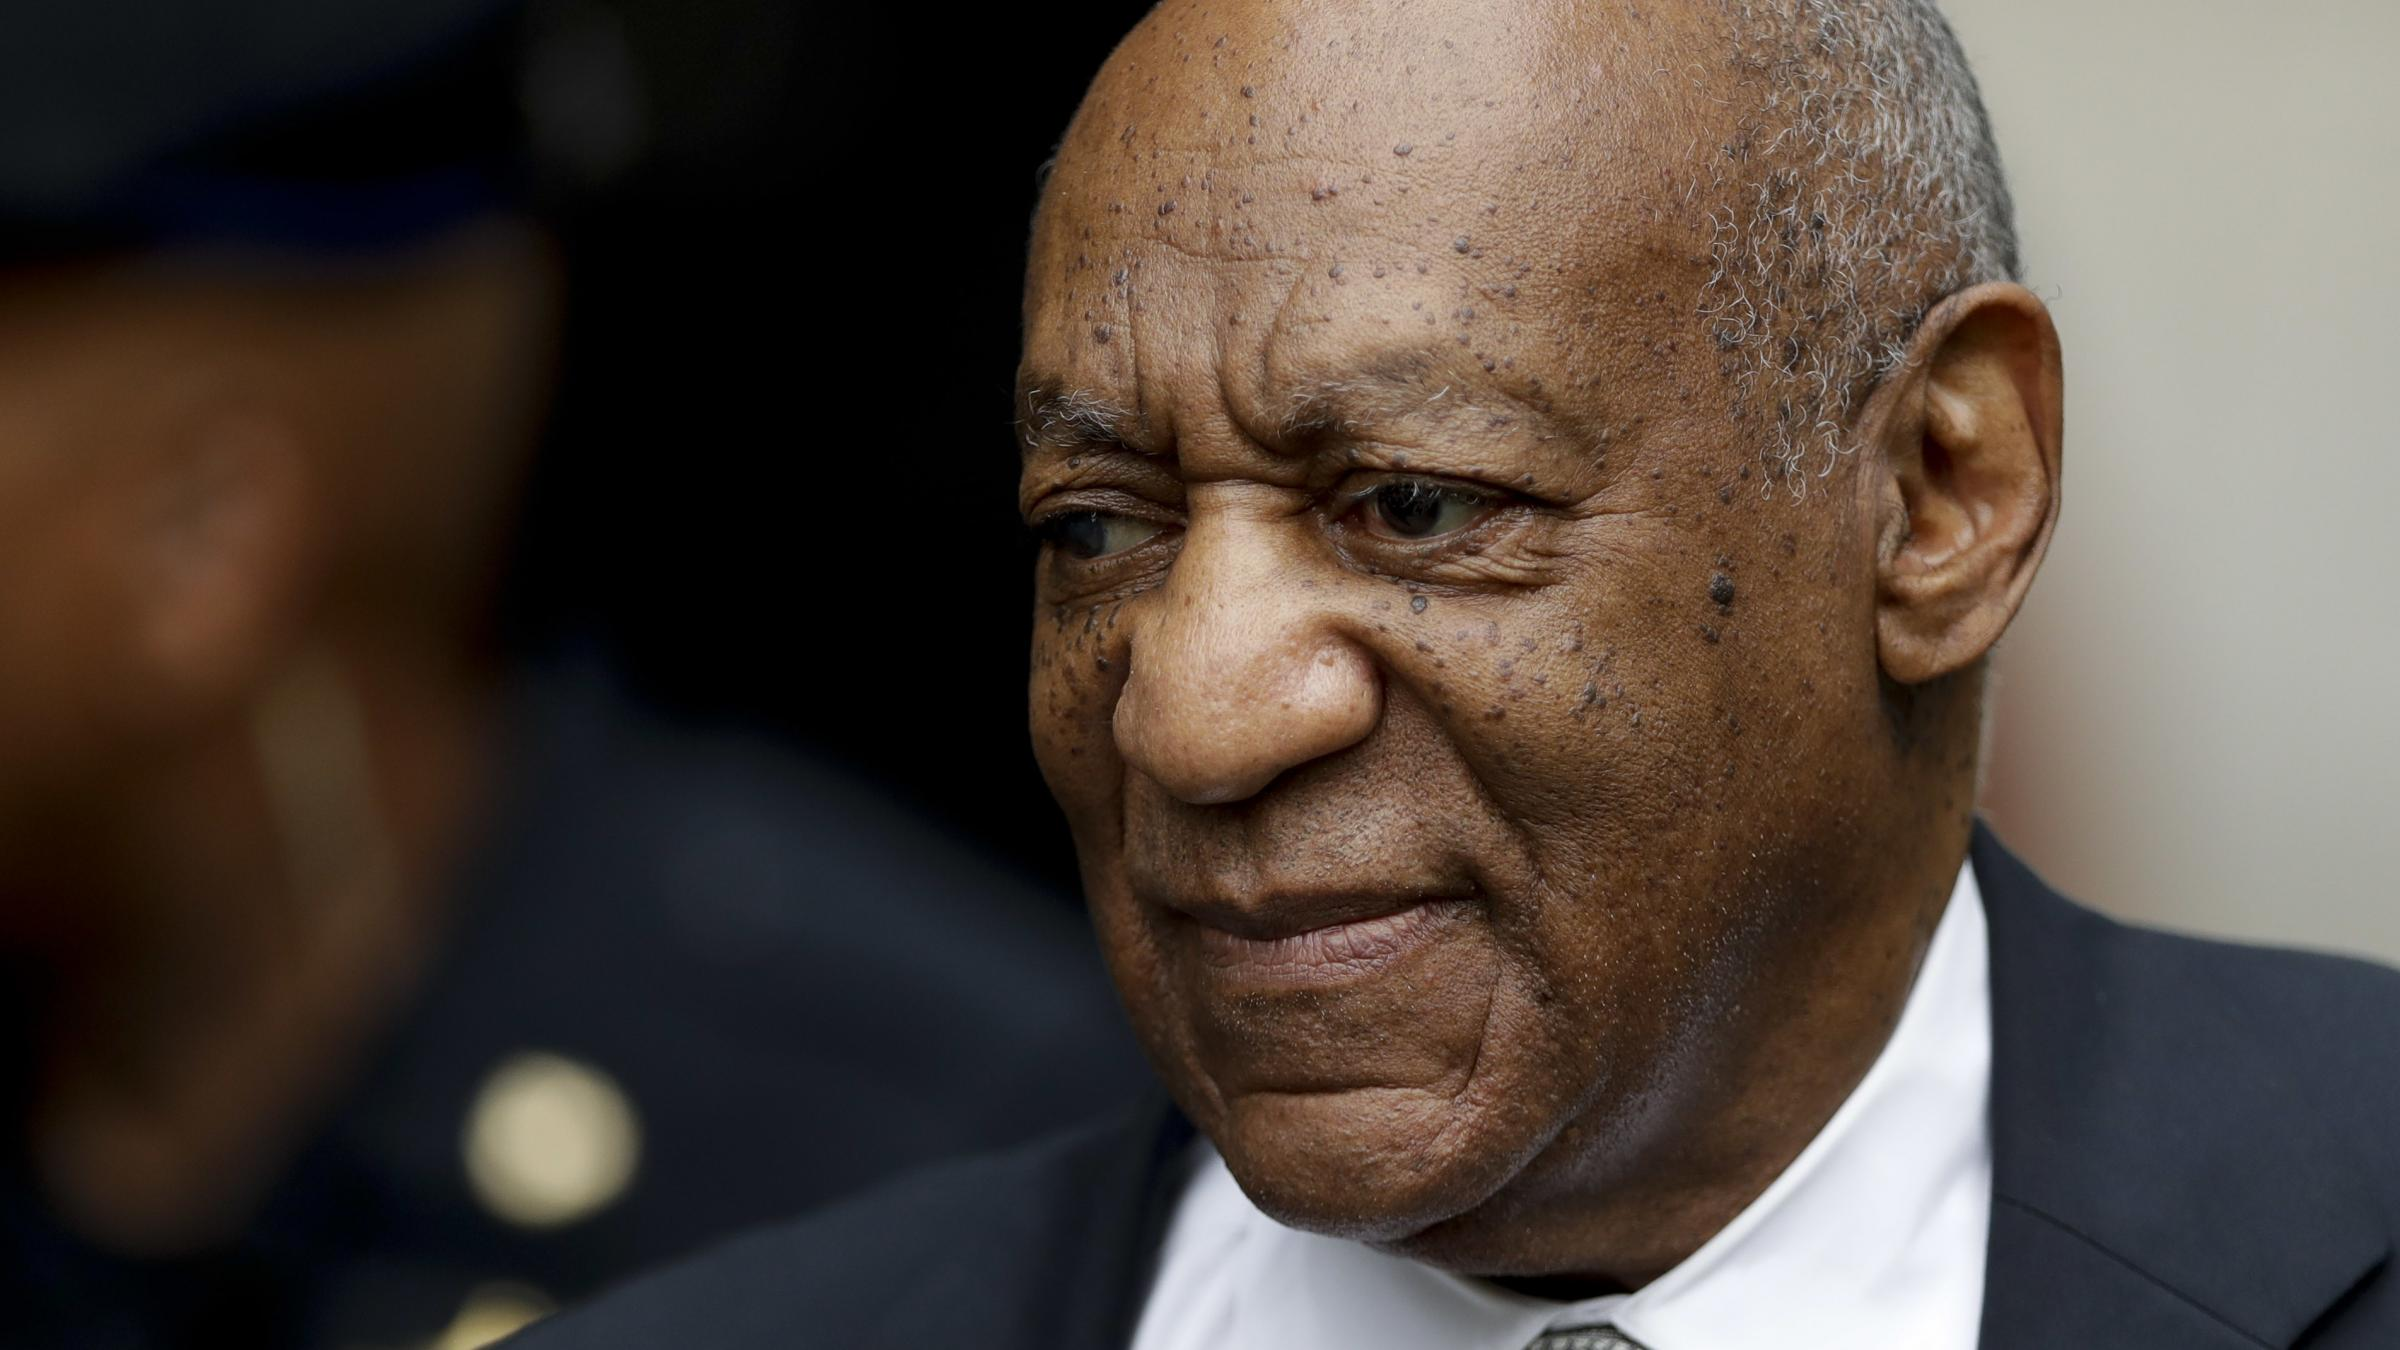 Bill Cosby faces retrial on sexual assault charges